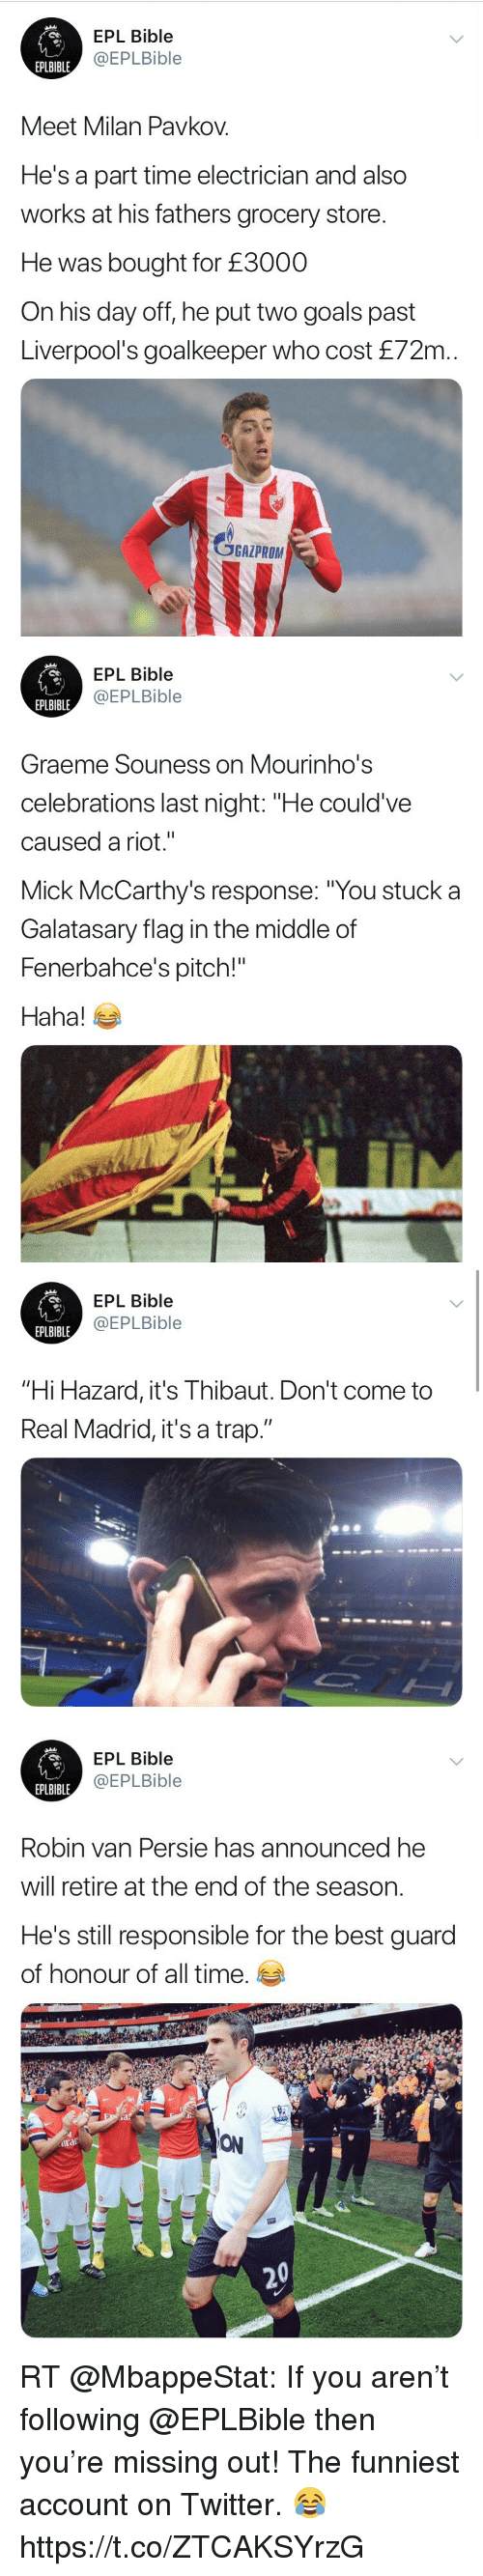 Goals real madrid and riot epl bible eplbible eplbible meet milan pavkov